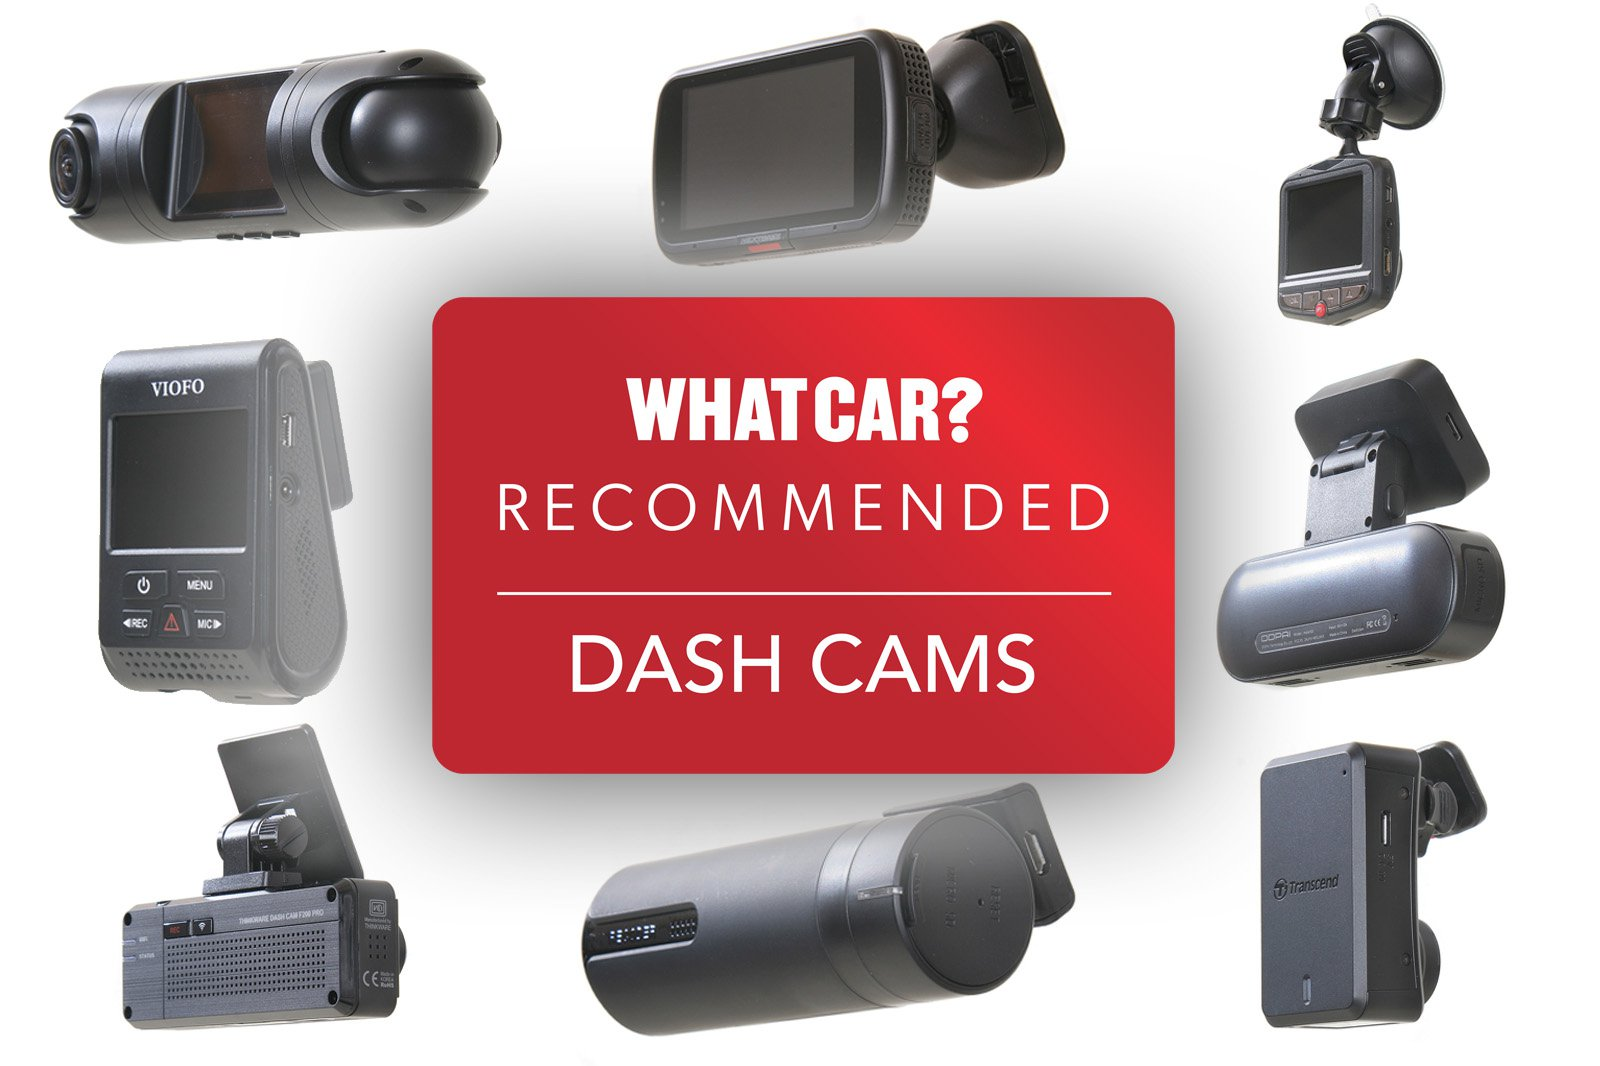 Dash cams 2021 lead